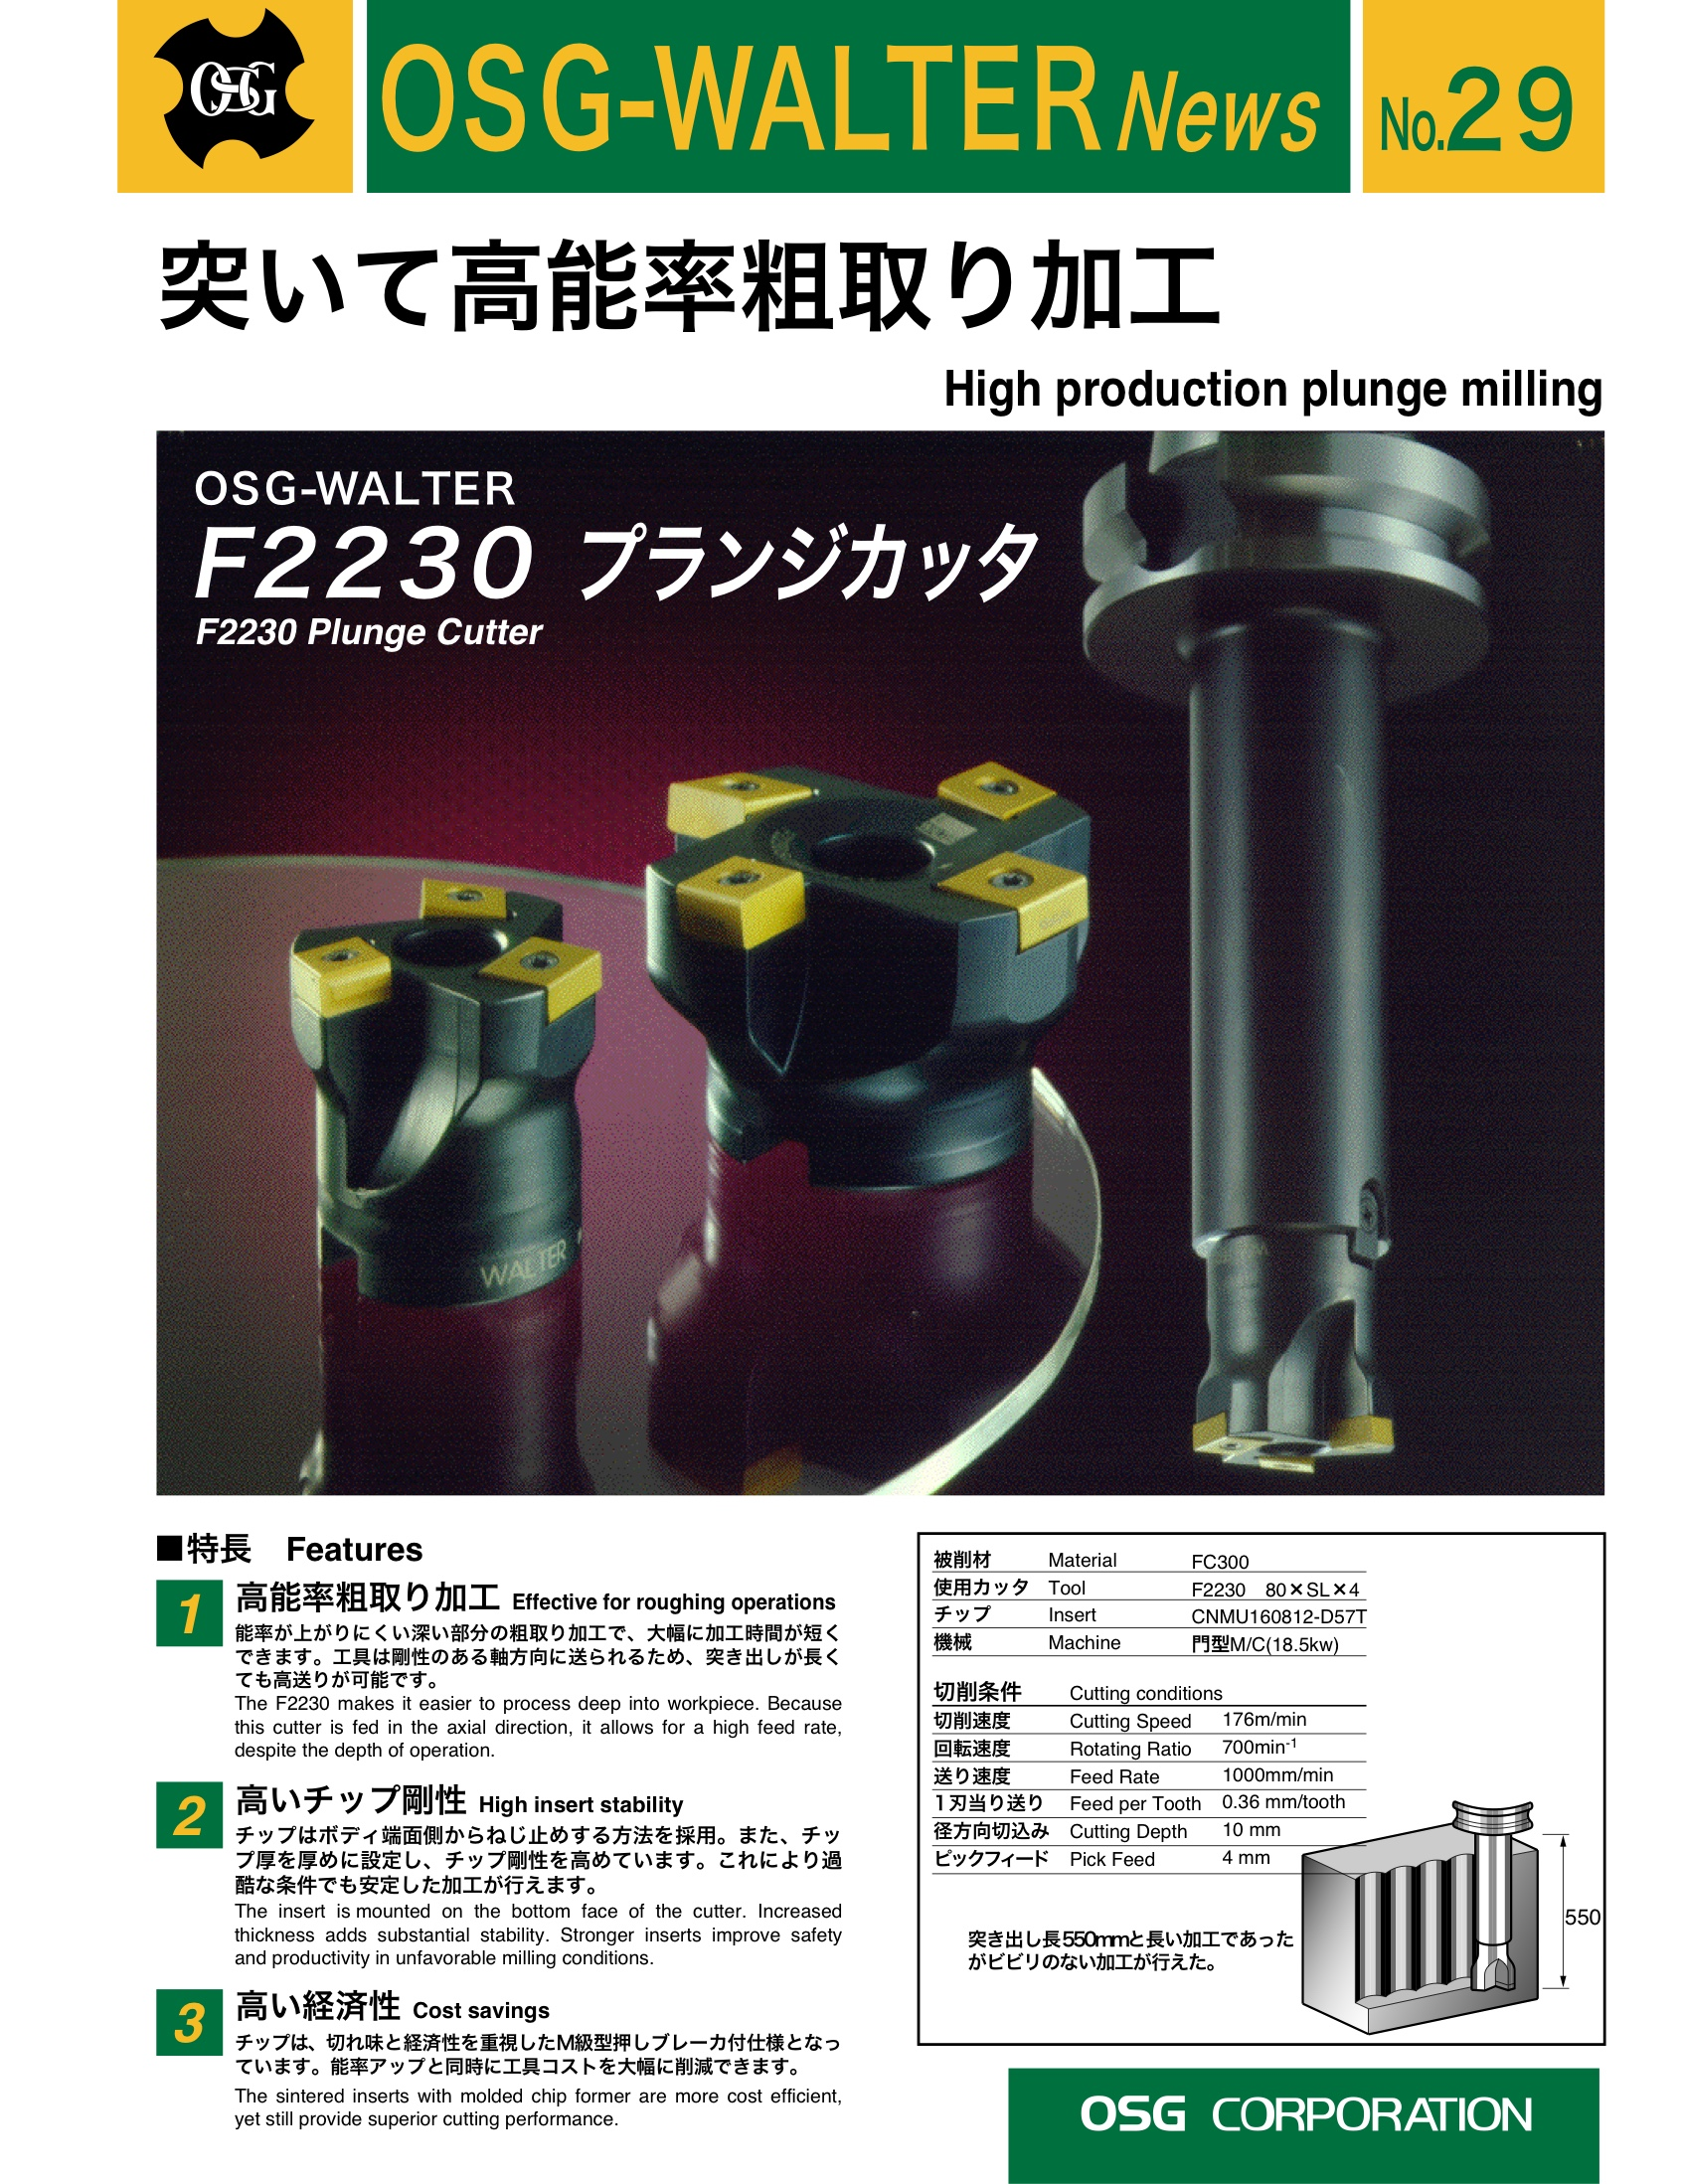 High Production Plunge Milling (F2230)